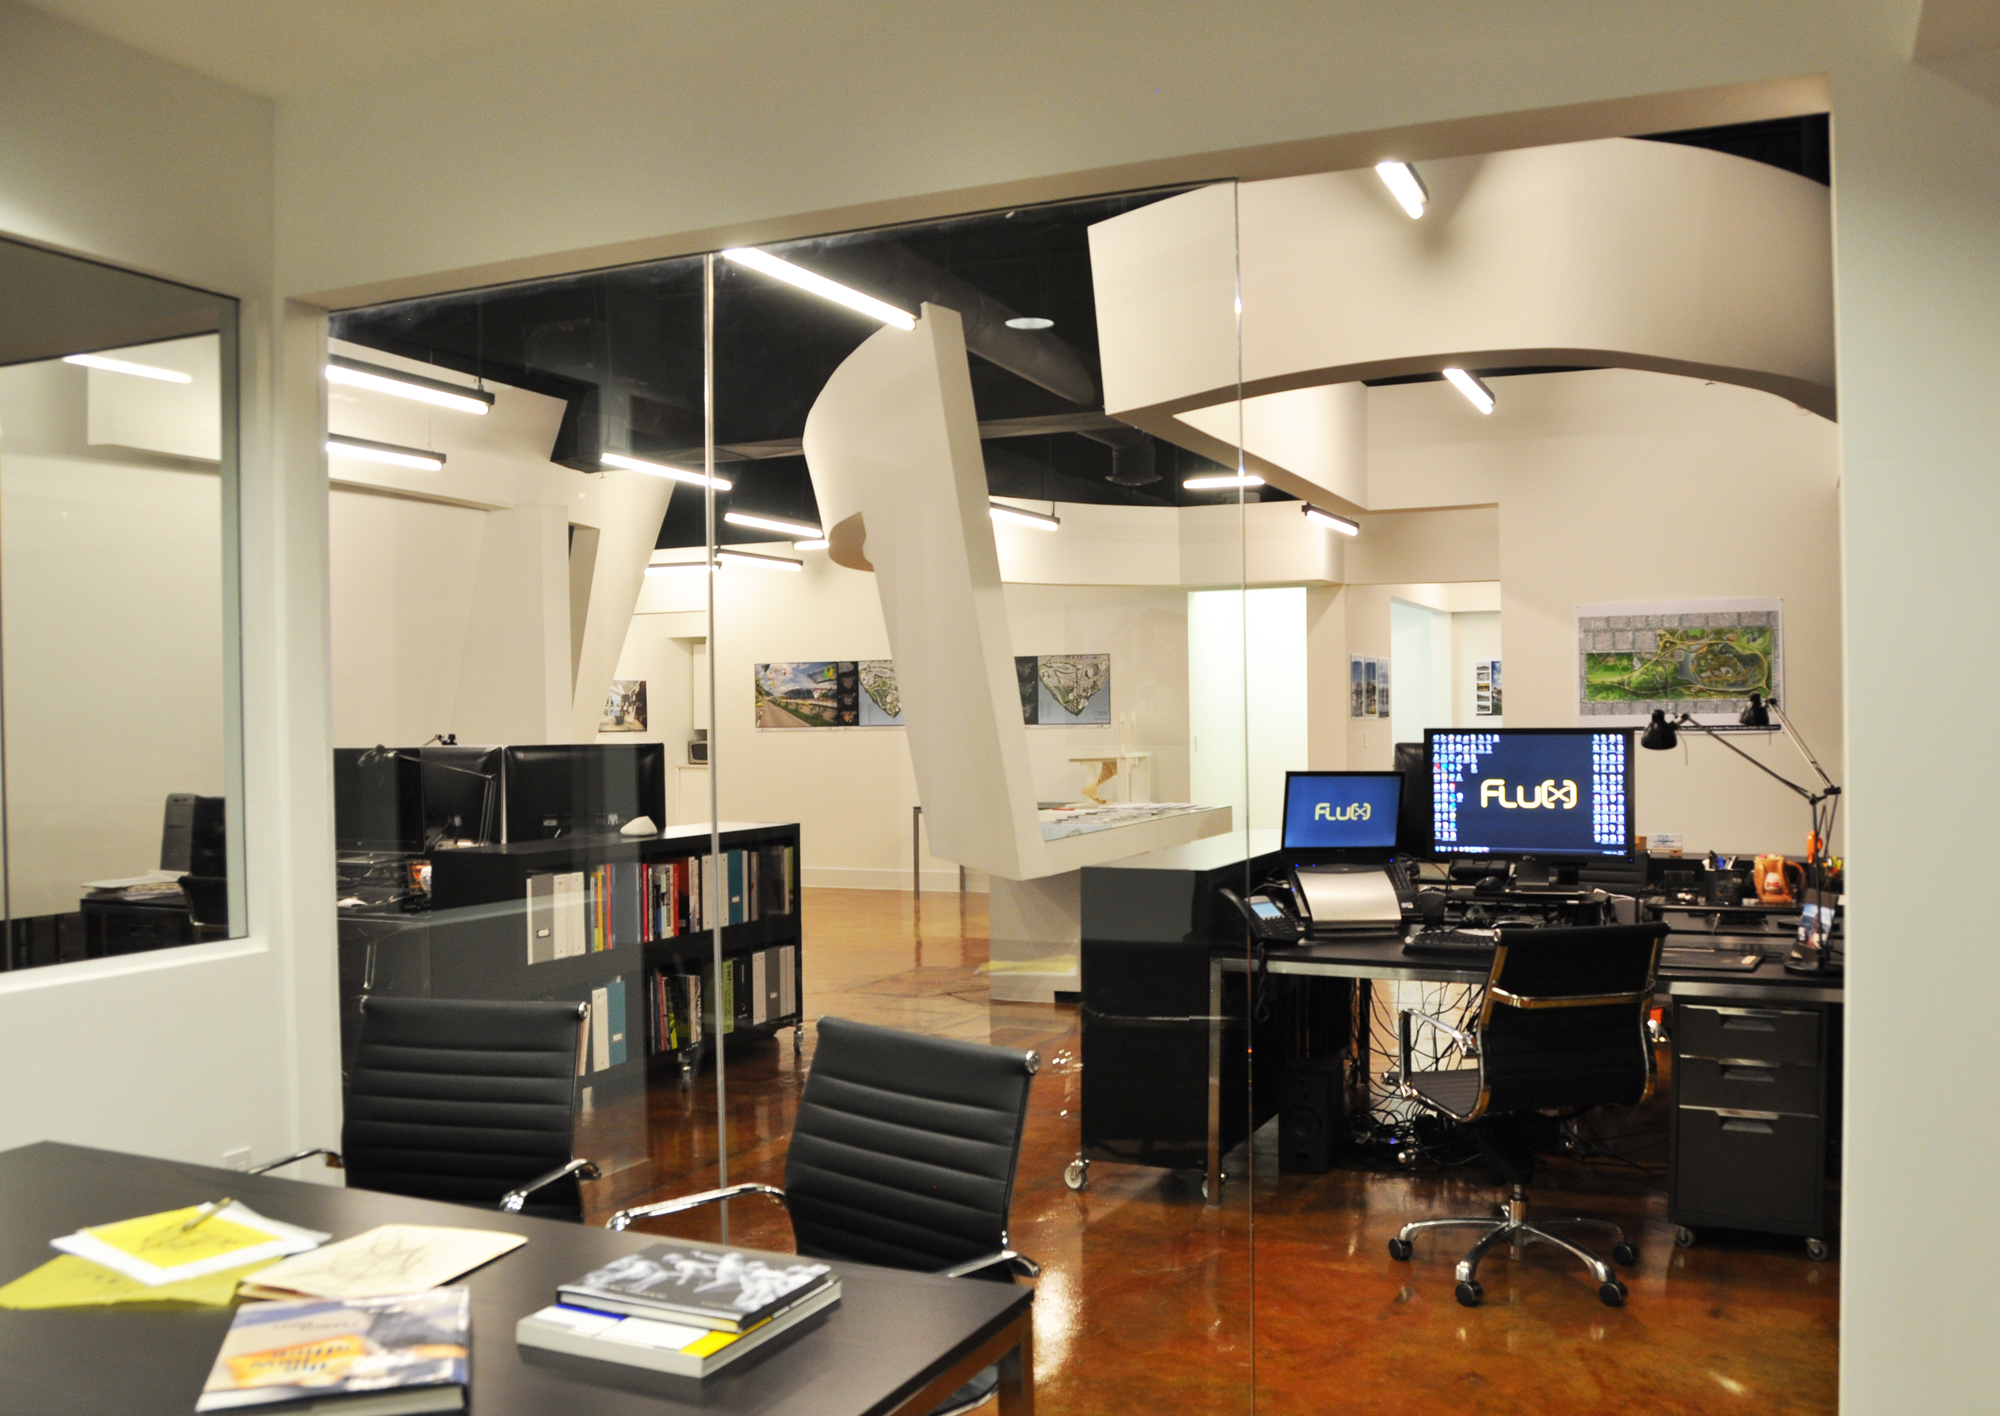 Office Renovation a600 office renovation | flu(x) architecture + design